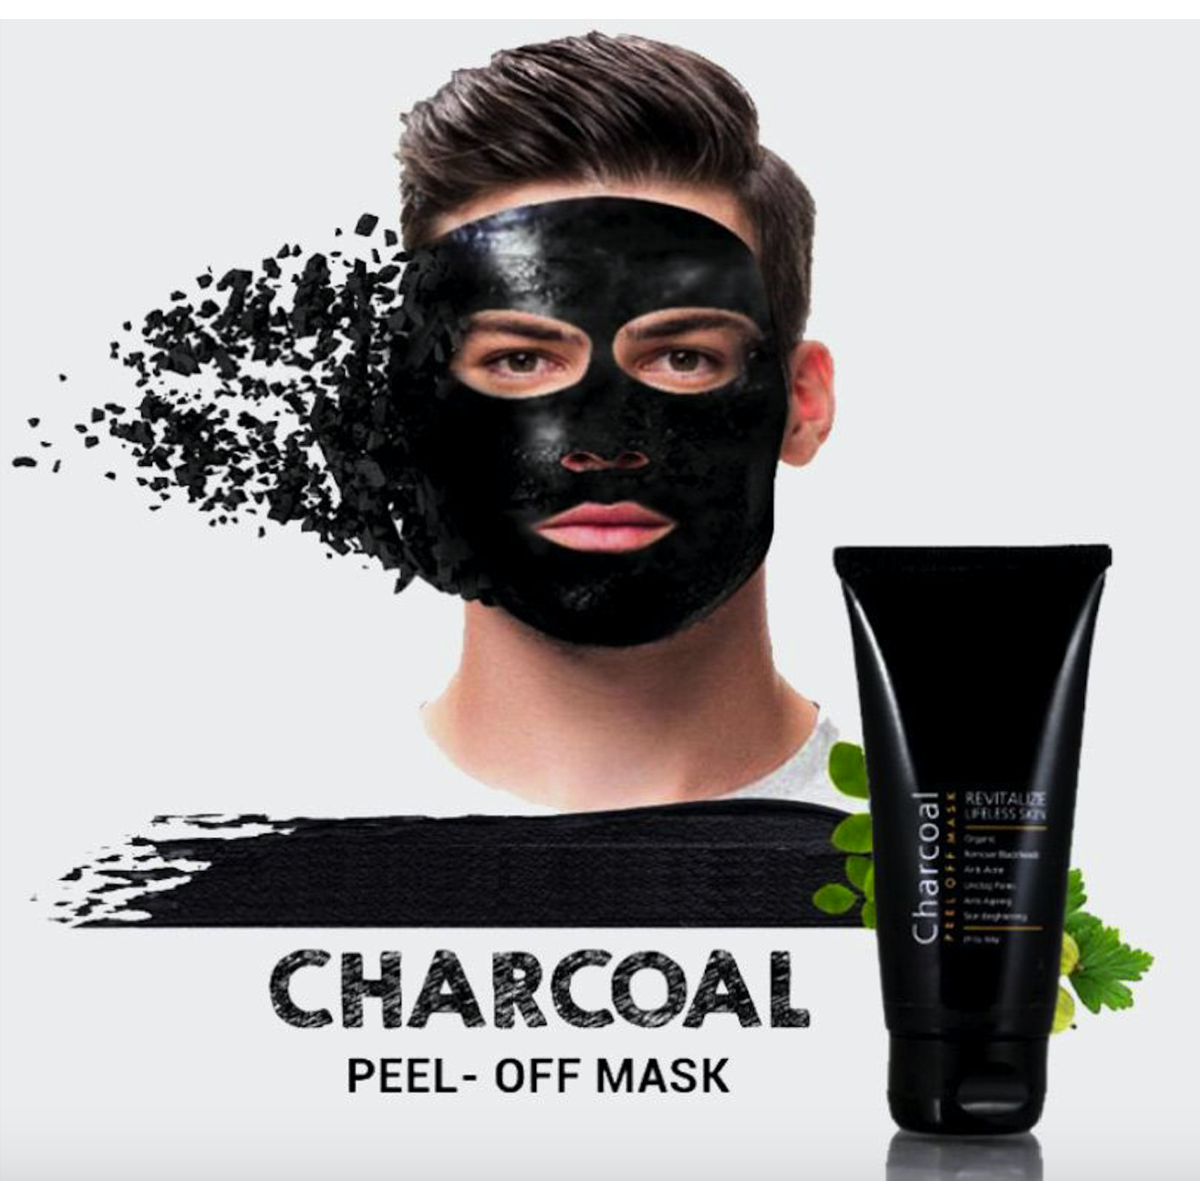 Pore Cleansing Face Mask for Men and Women - Natural Ingredients